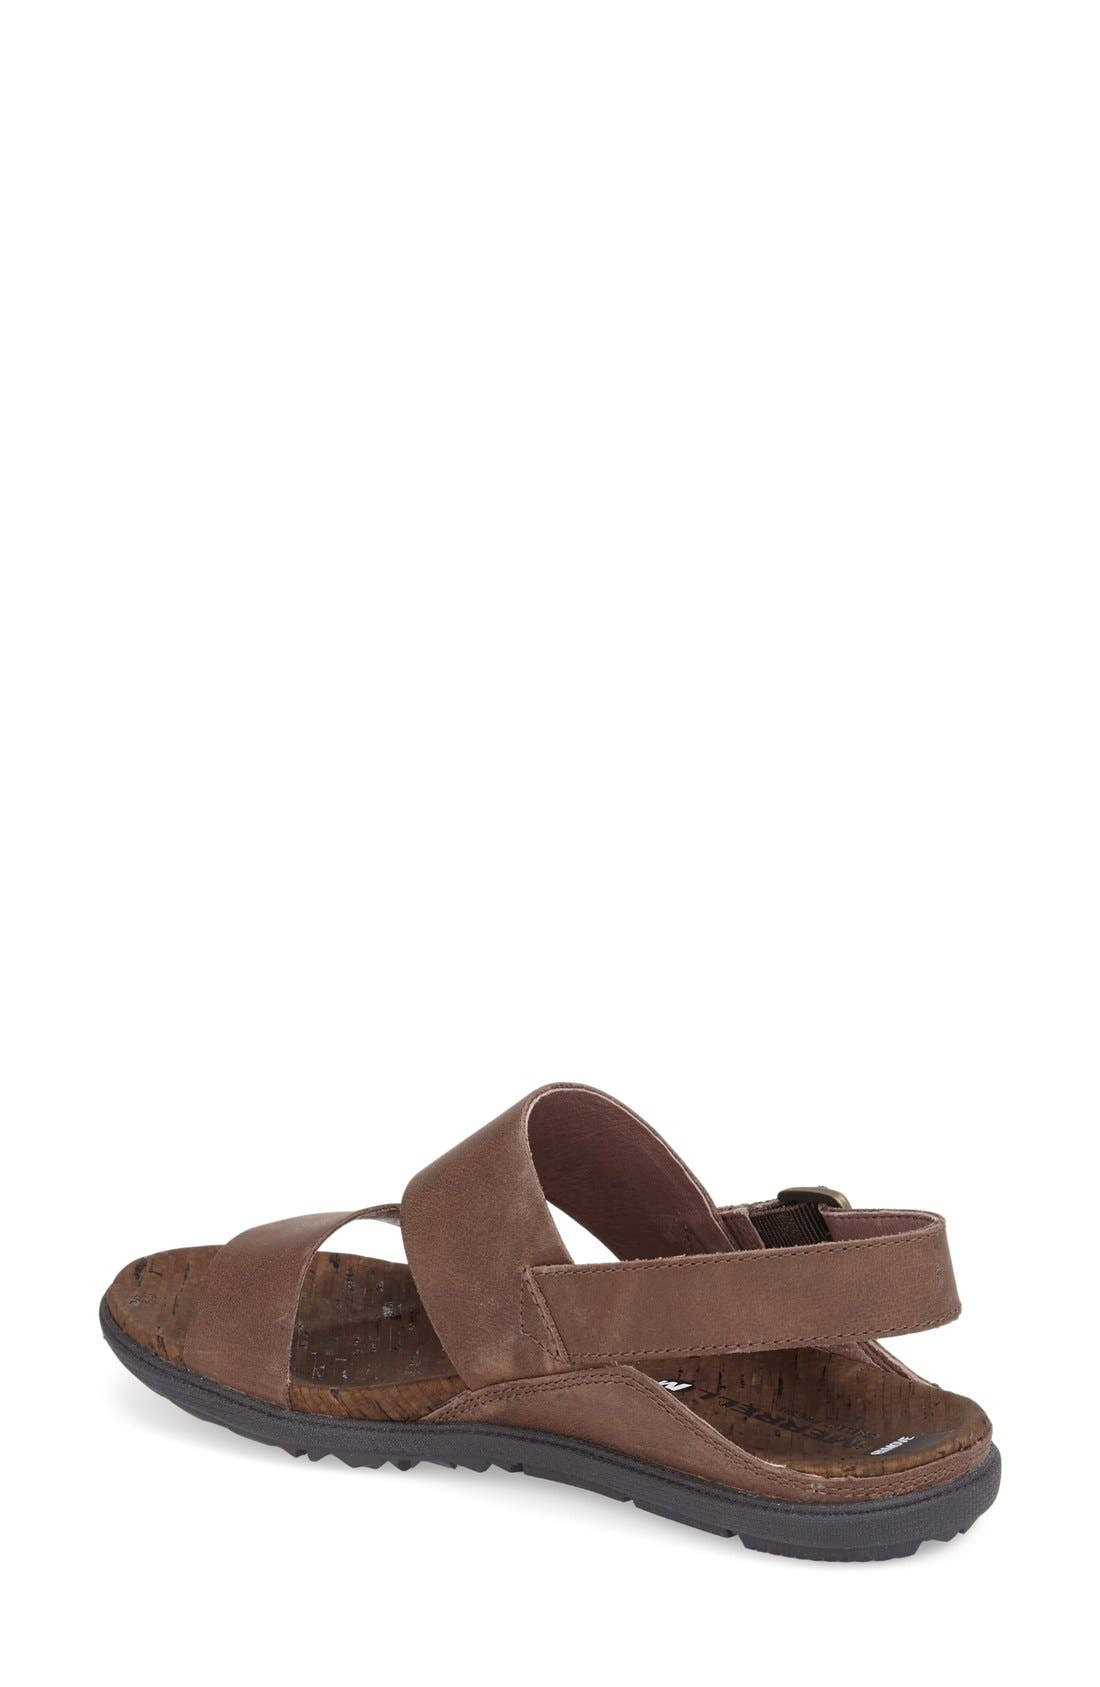 'Around Town' Slingback Sandal,                             Alternate thumbnail 2, color,                             Brown Leather